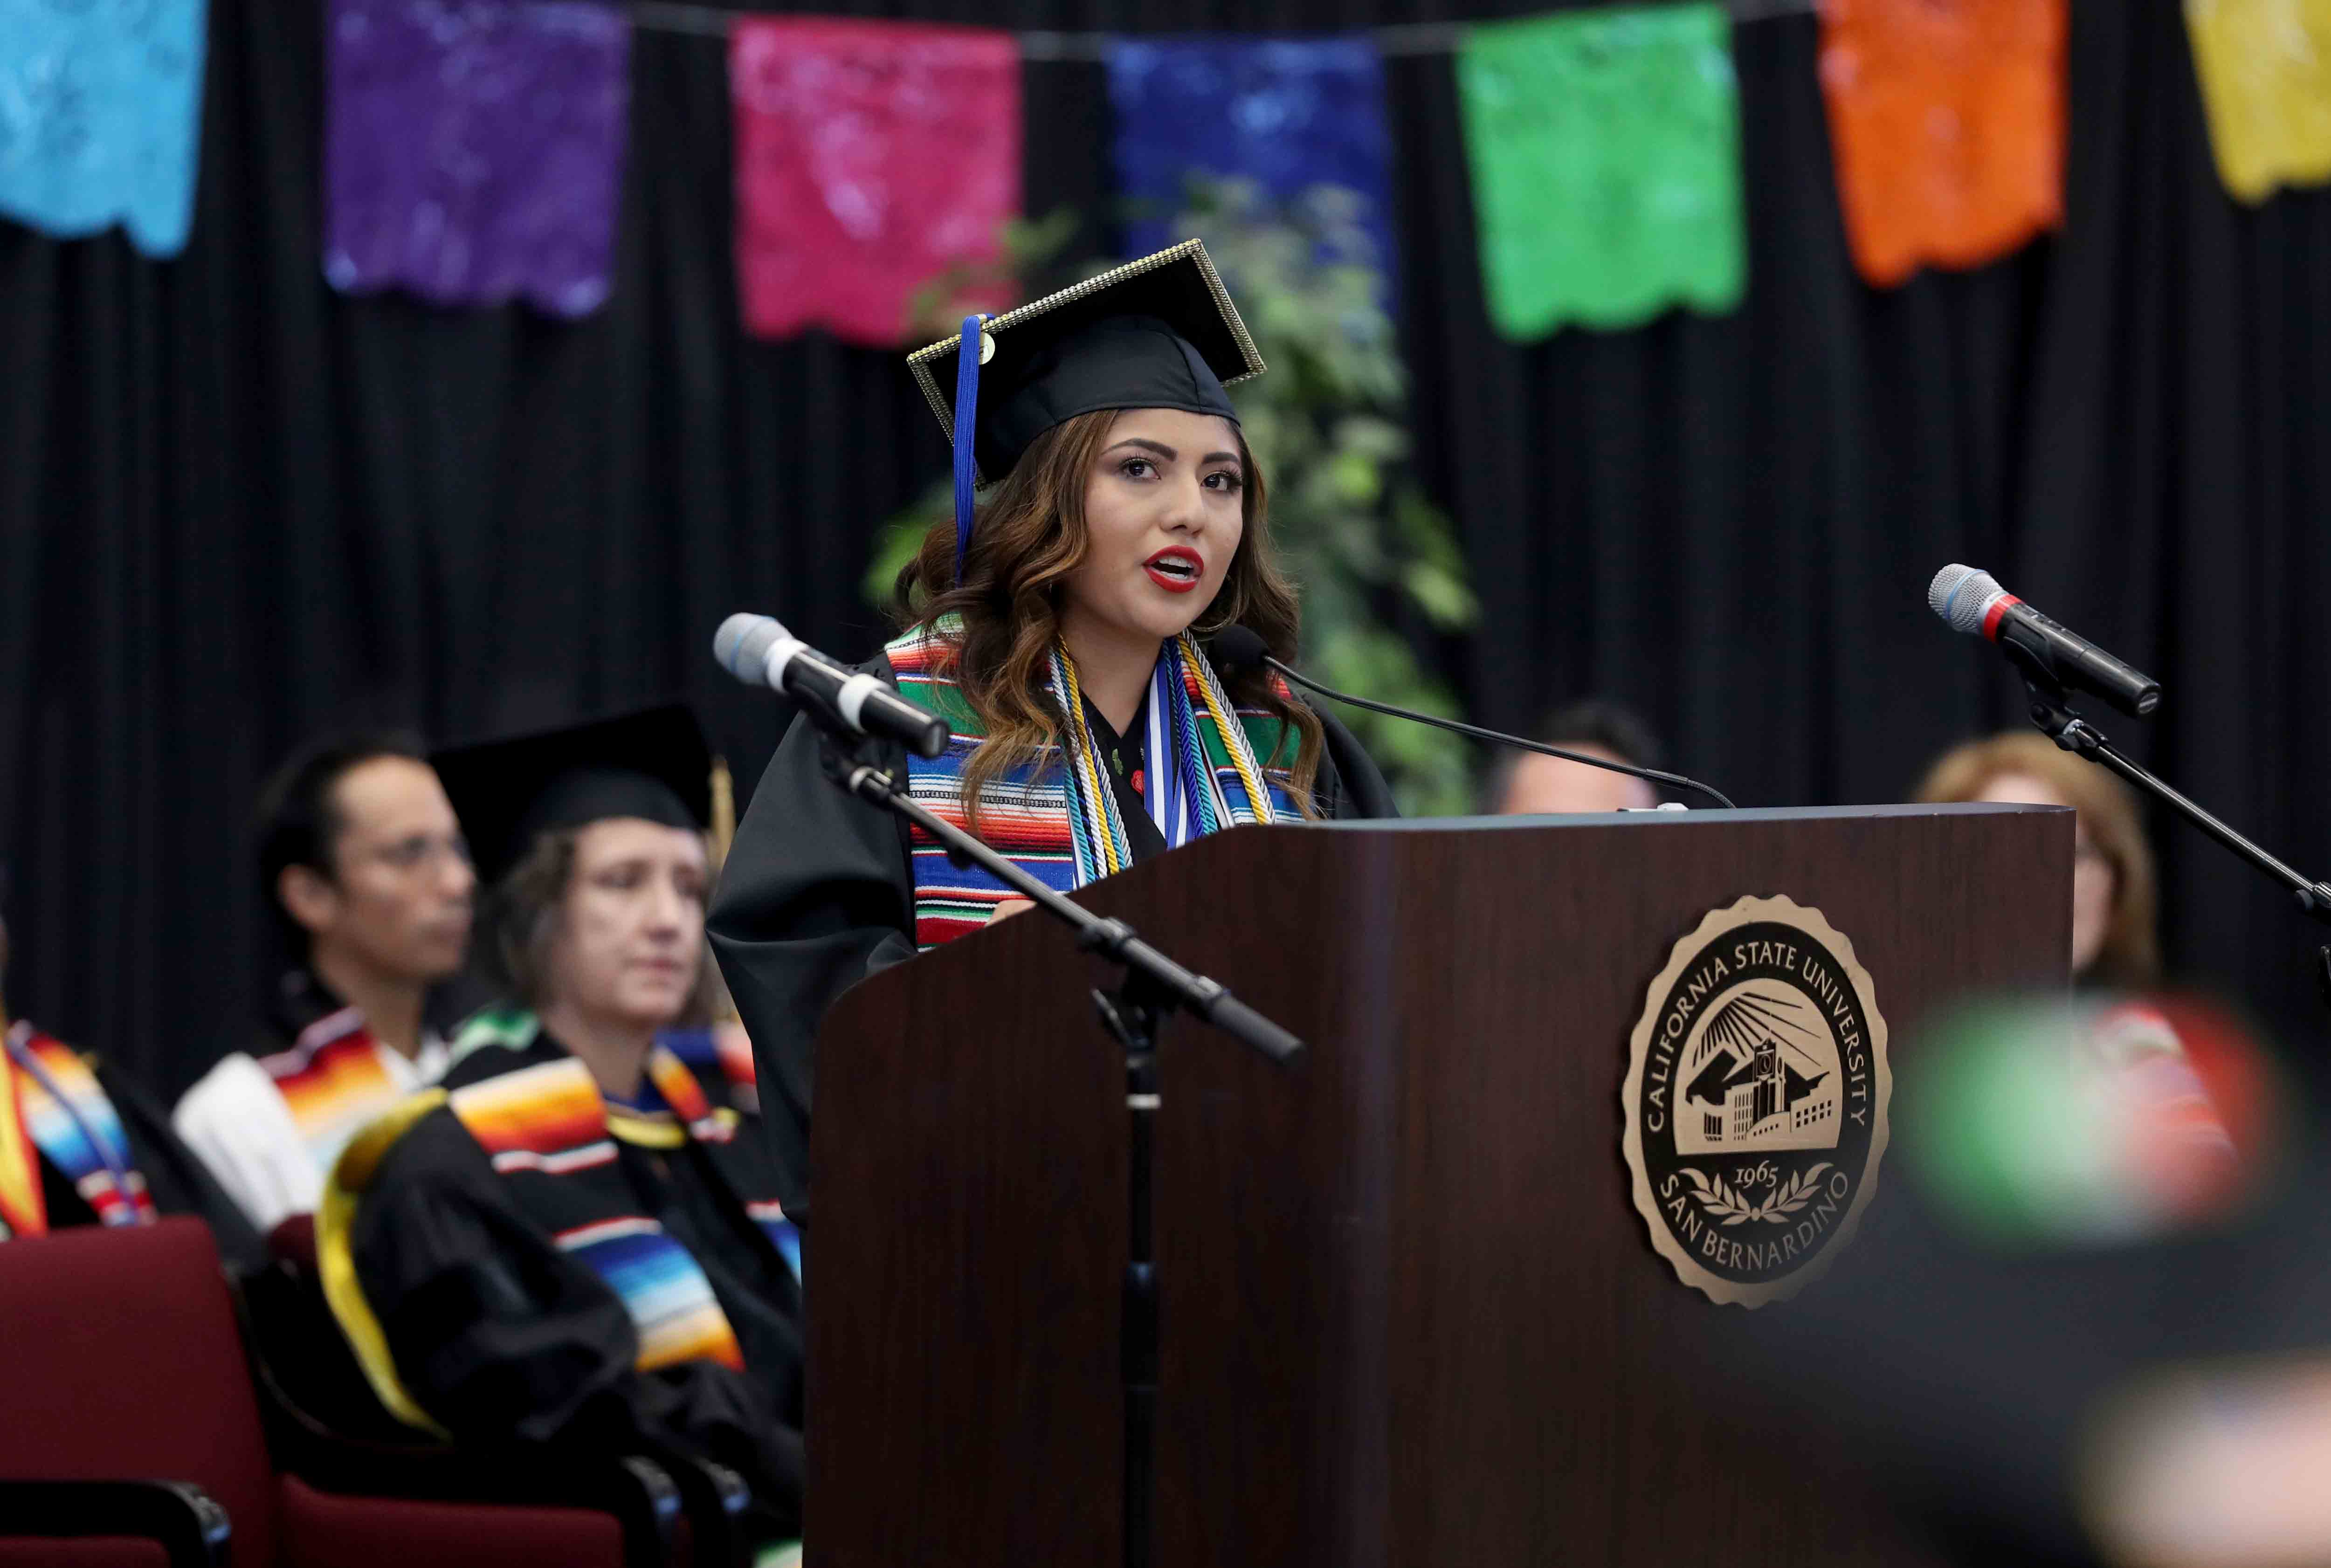 Leticia Herrera Mendez, who will be graduating with a bachelor's degree in sociology.